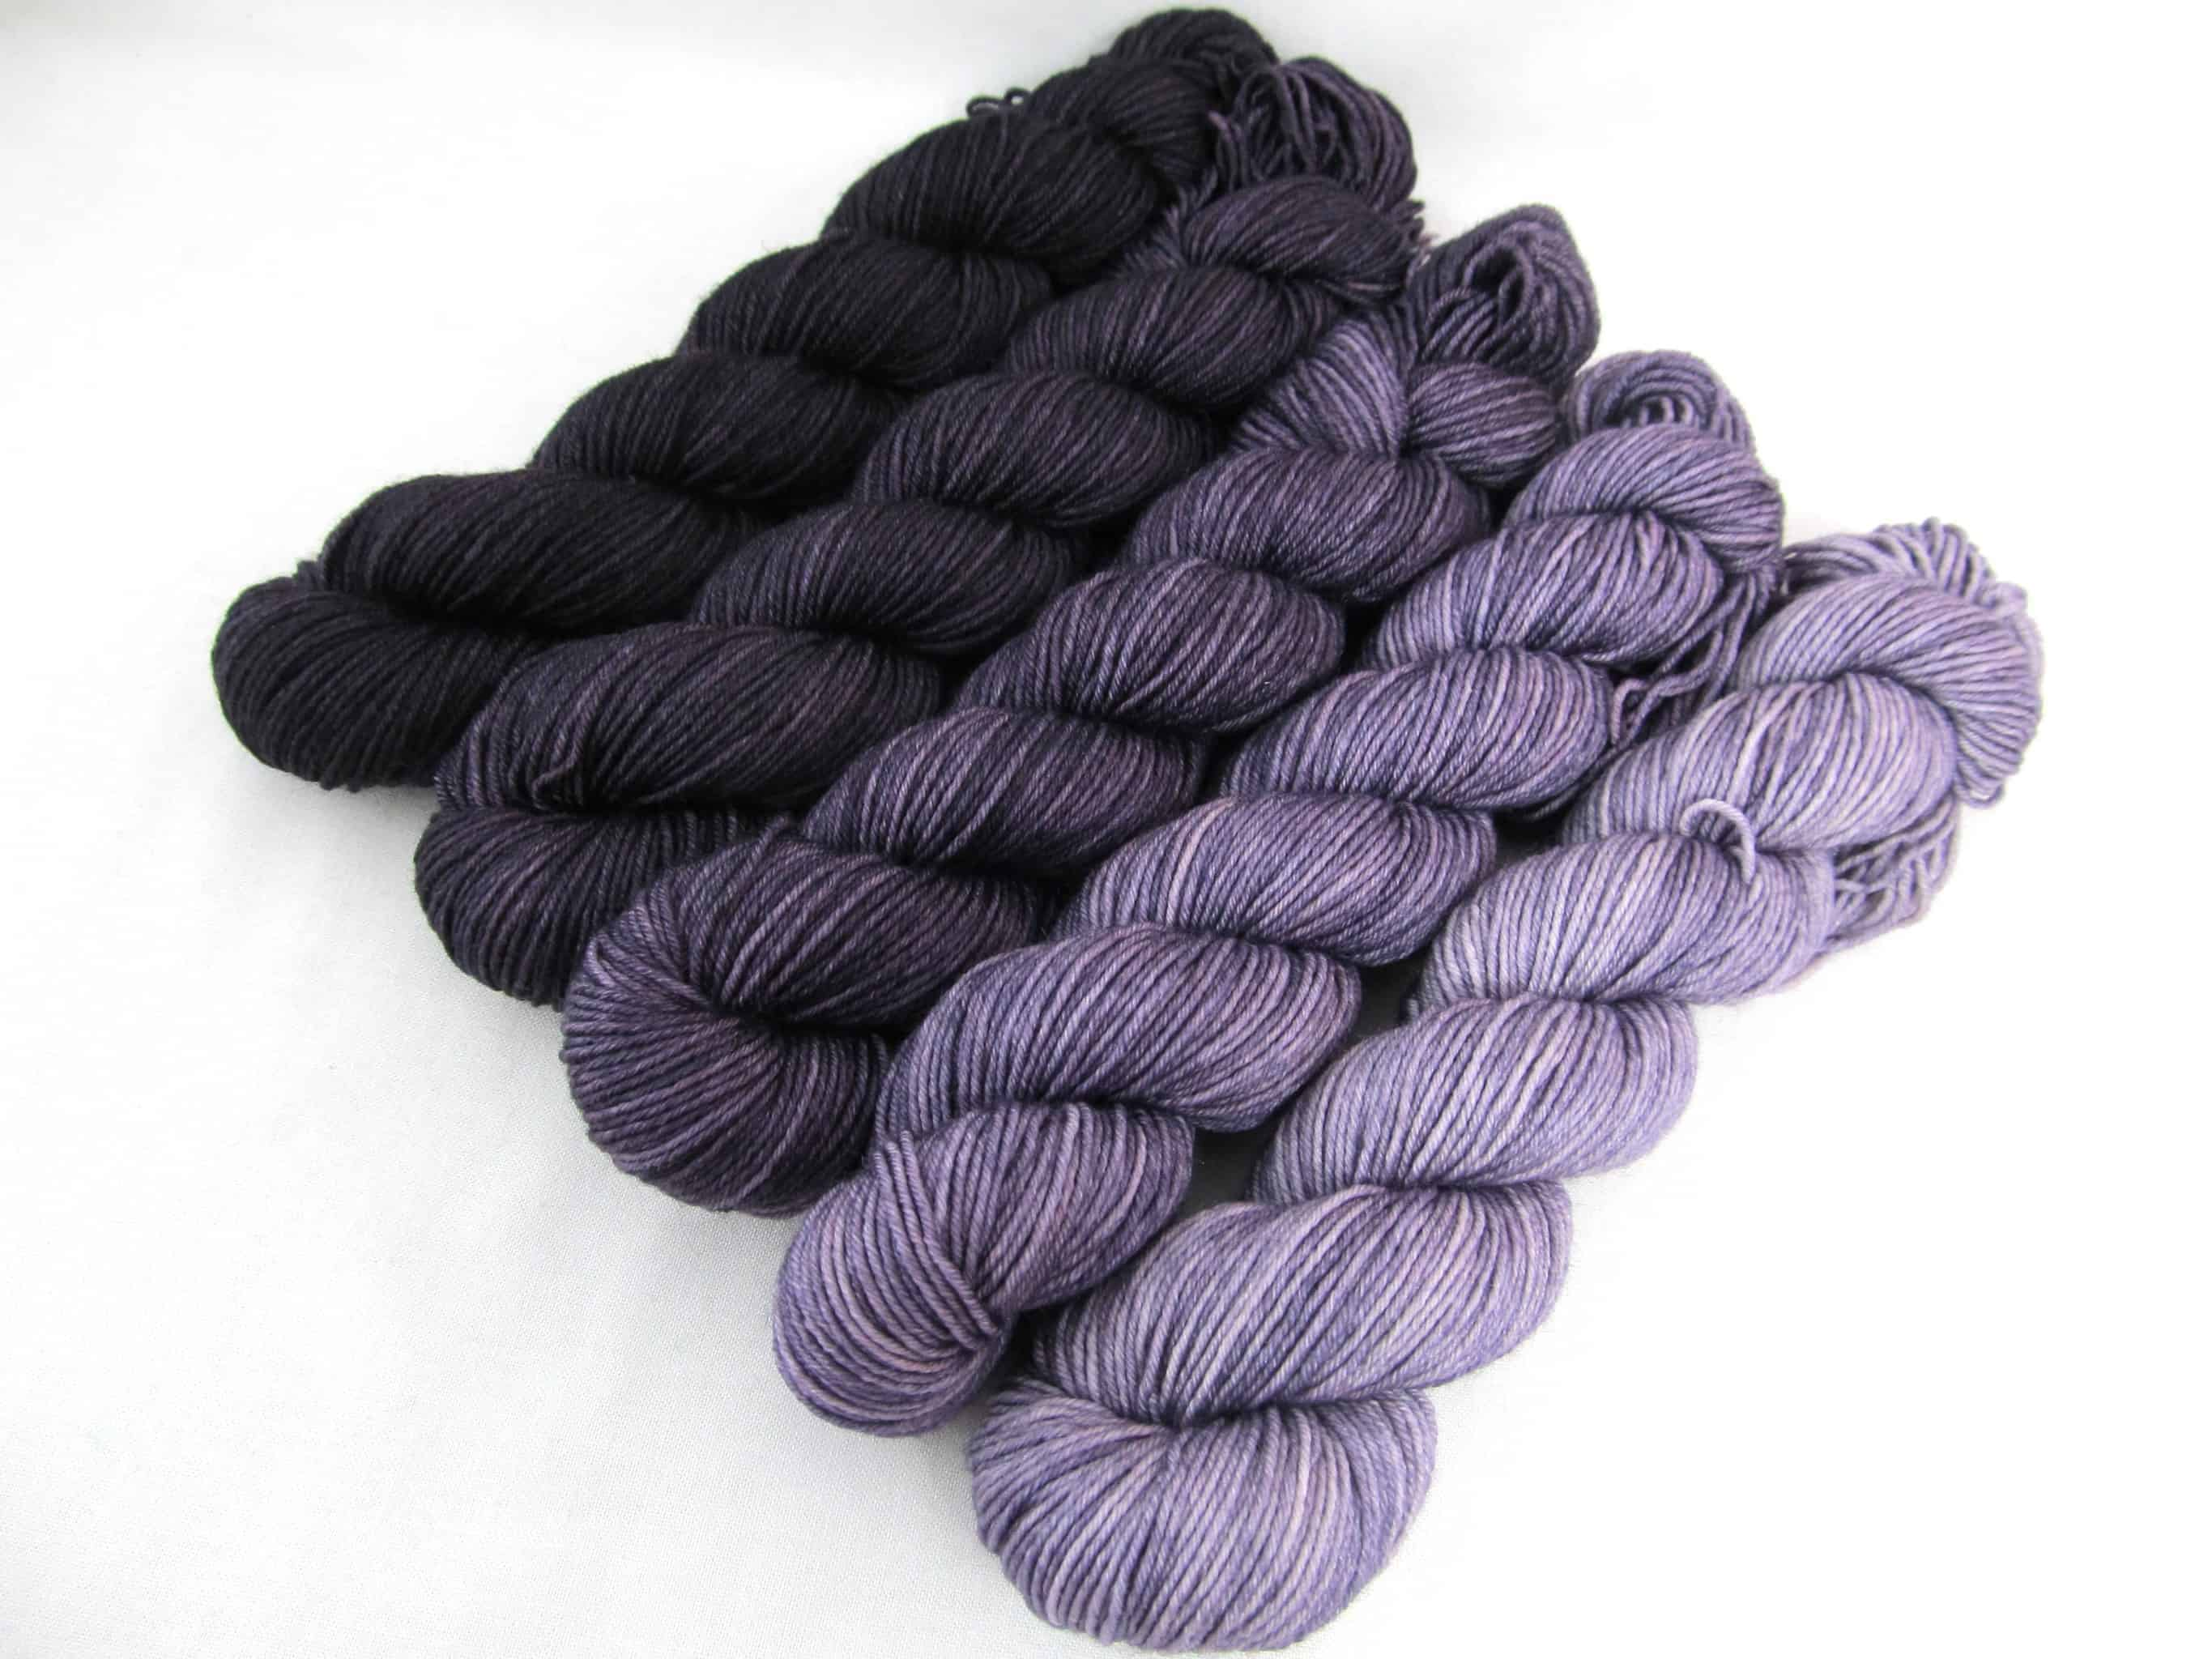 Hand Dyed Speckled Variegated Hand Painted Yarn Muddy Waters- 100 Cotton